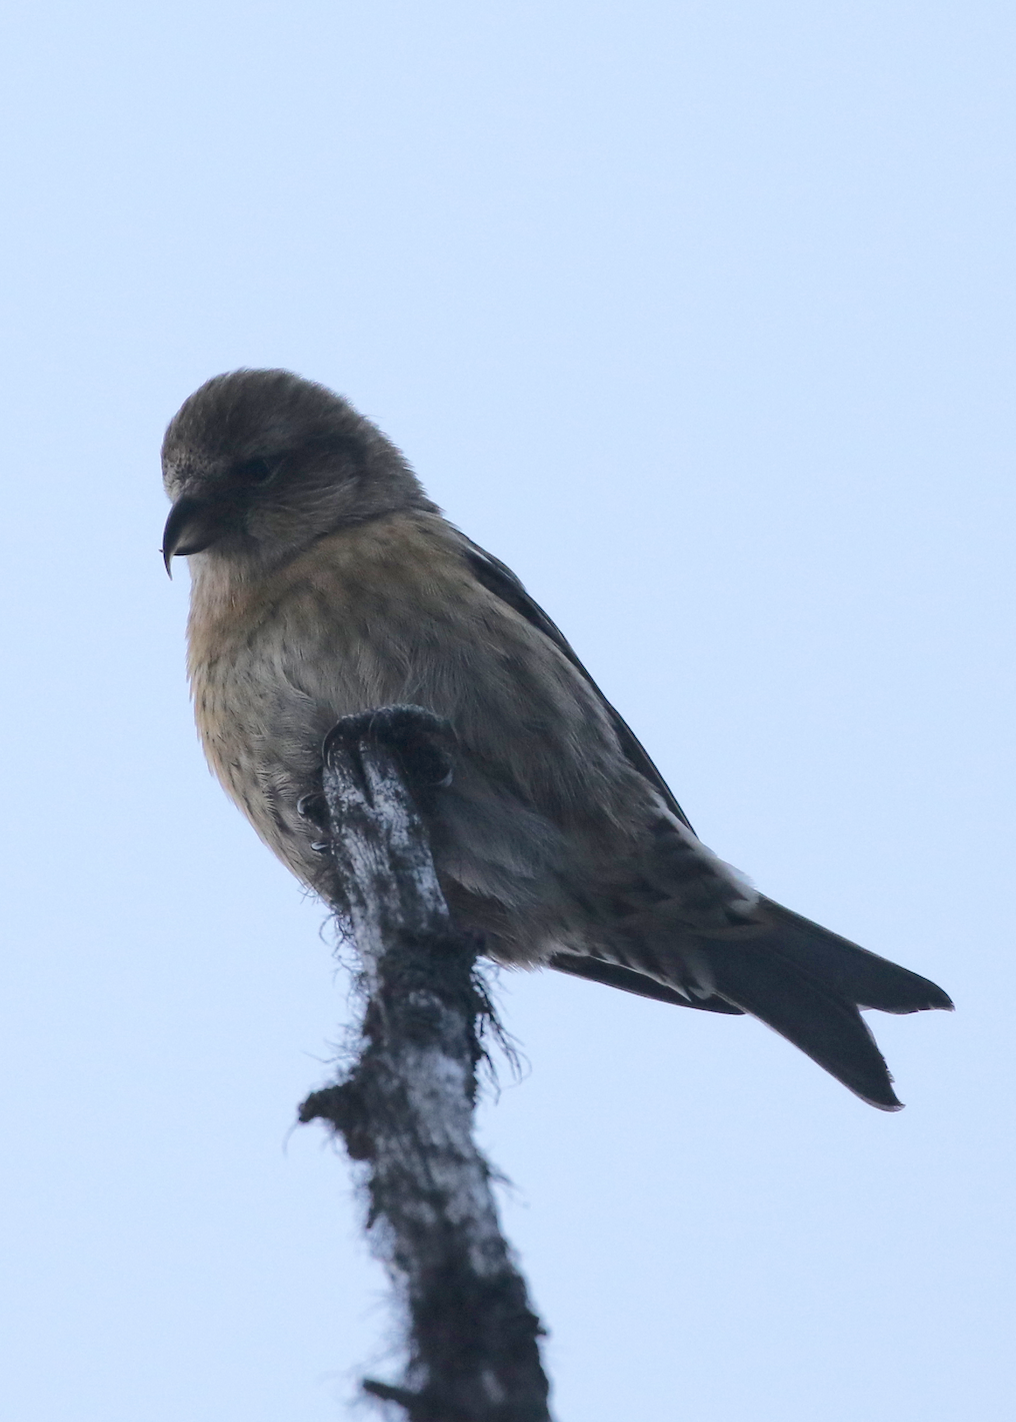 With the brilliant idea of playing an owl tape, a member of our group attracted a curious flock of White-winged Crossbills, a specialist of the spruce/pine forests who can dismantle pine cones with a quick nip, extracting the energy-rich seeds inside.